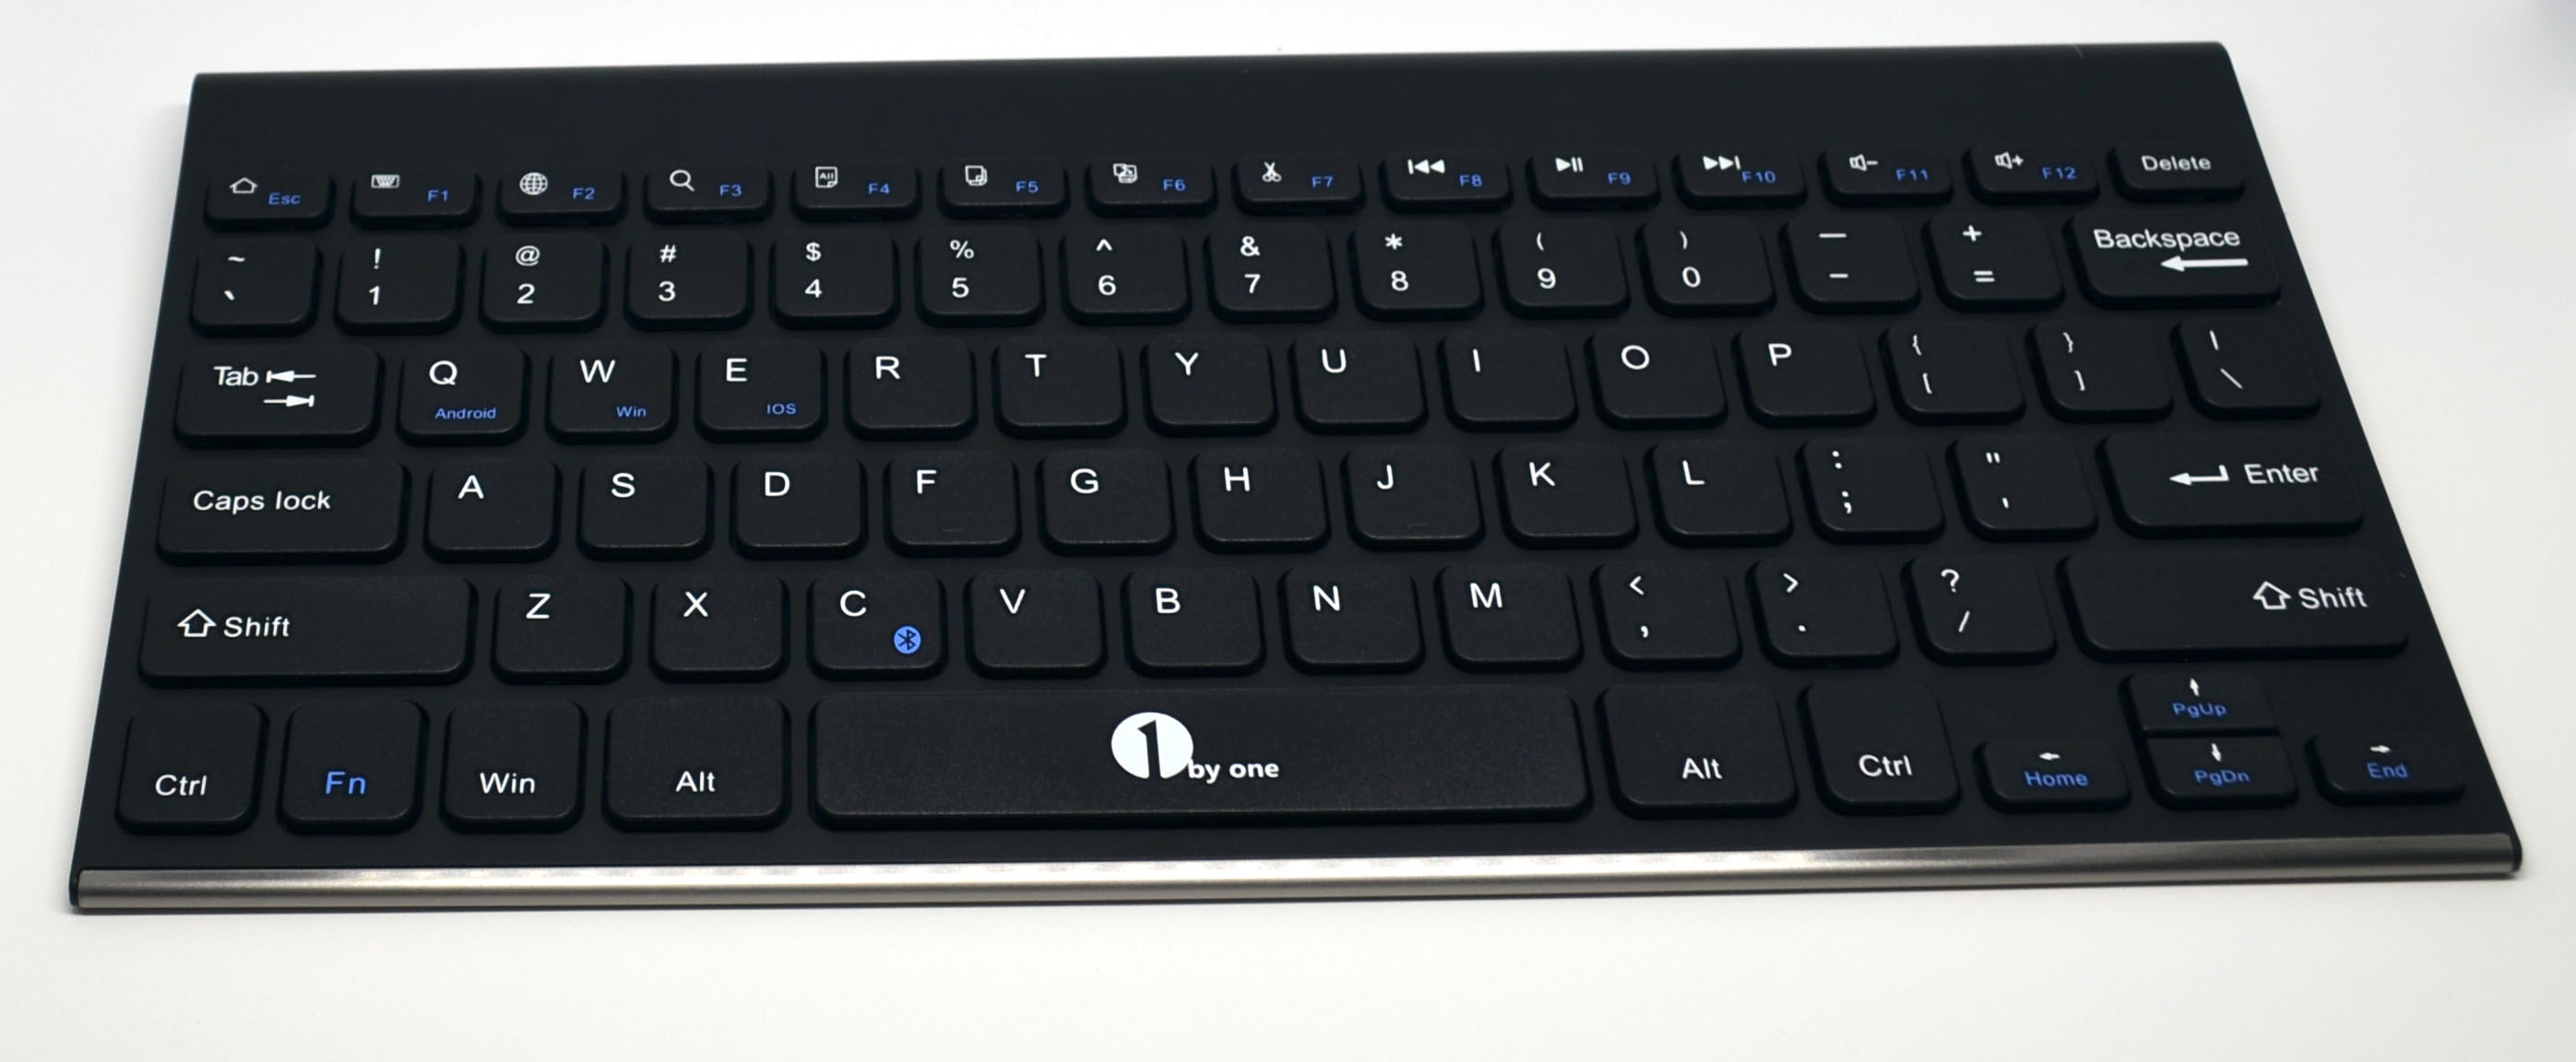 Review: 1byone Wireless Bluetooth Keyboard